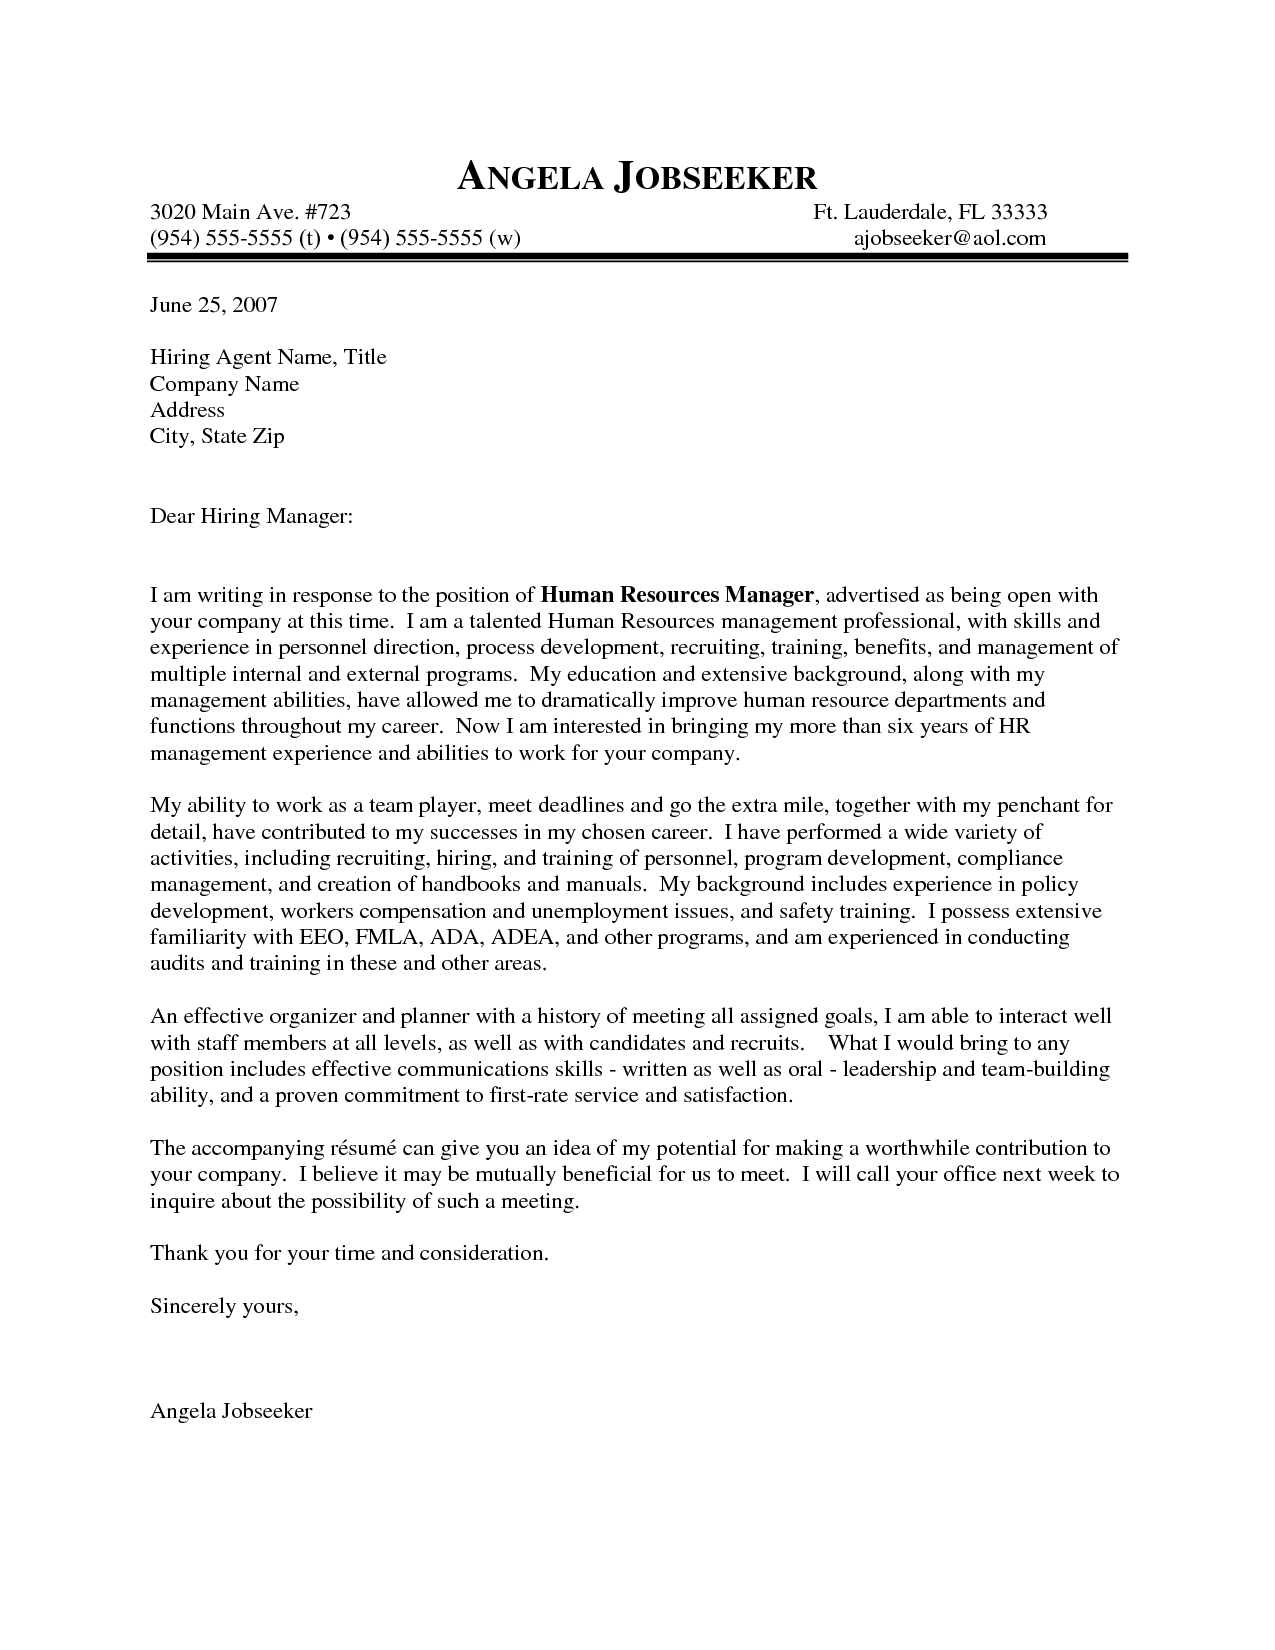 outstanding cover letter examples hr manager cover letter example - Estate Manager Cover Letter